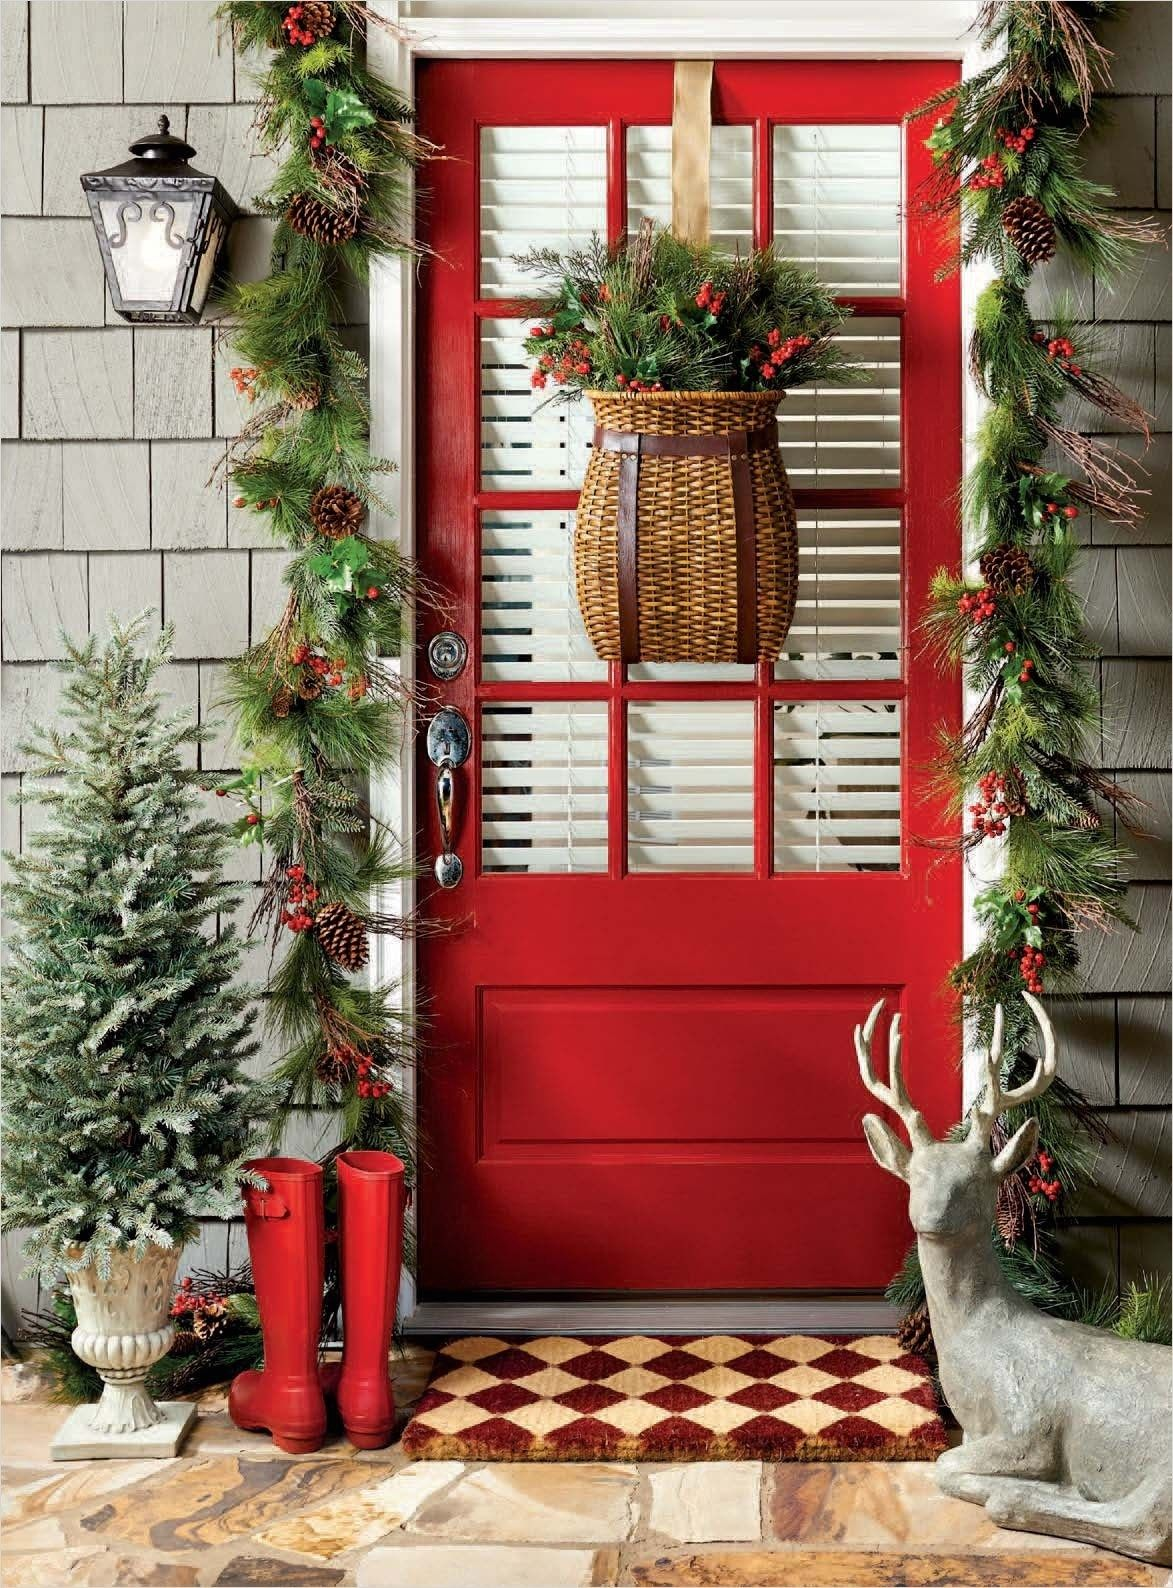 41 Amazing Country Christmas Decorating Ideas